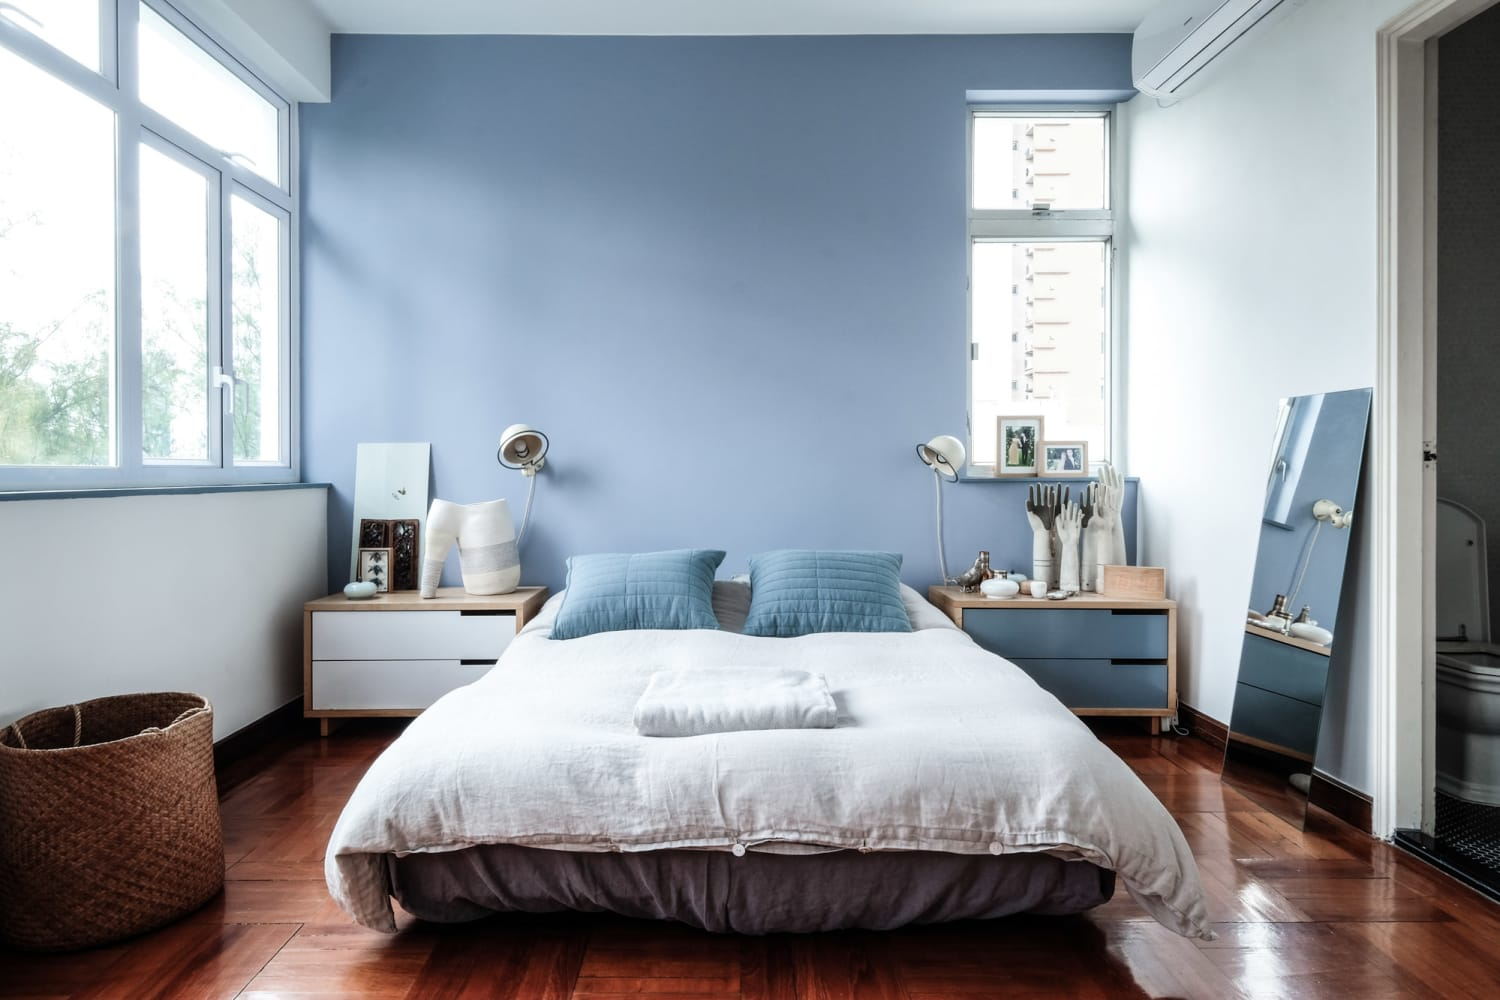 The 7 Best Bedroom Styling Tips, According to Professional Stagers